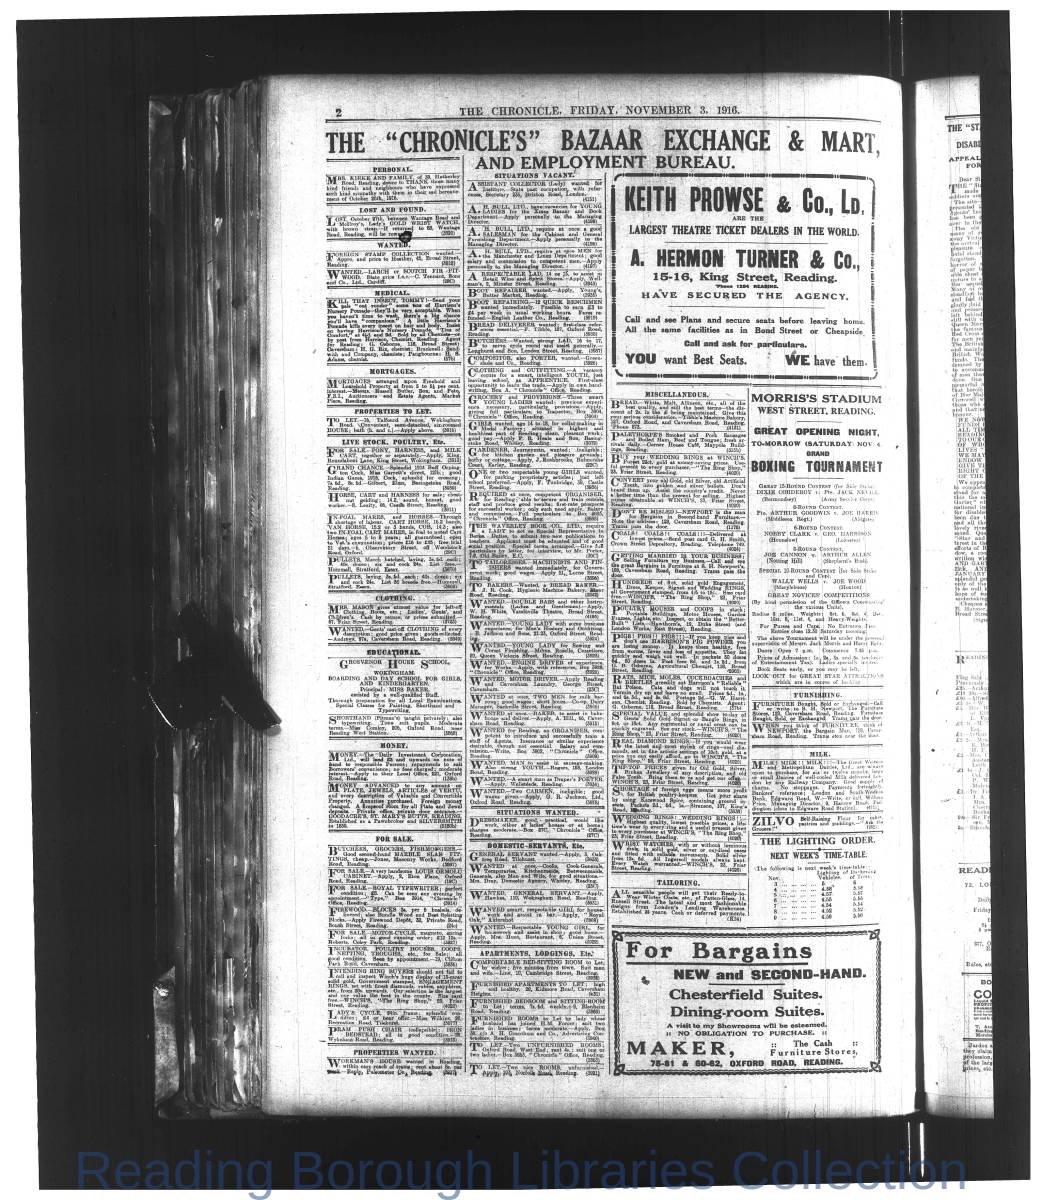 Berkshire Chronicle Reading_03-11-1916_00003.jpg